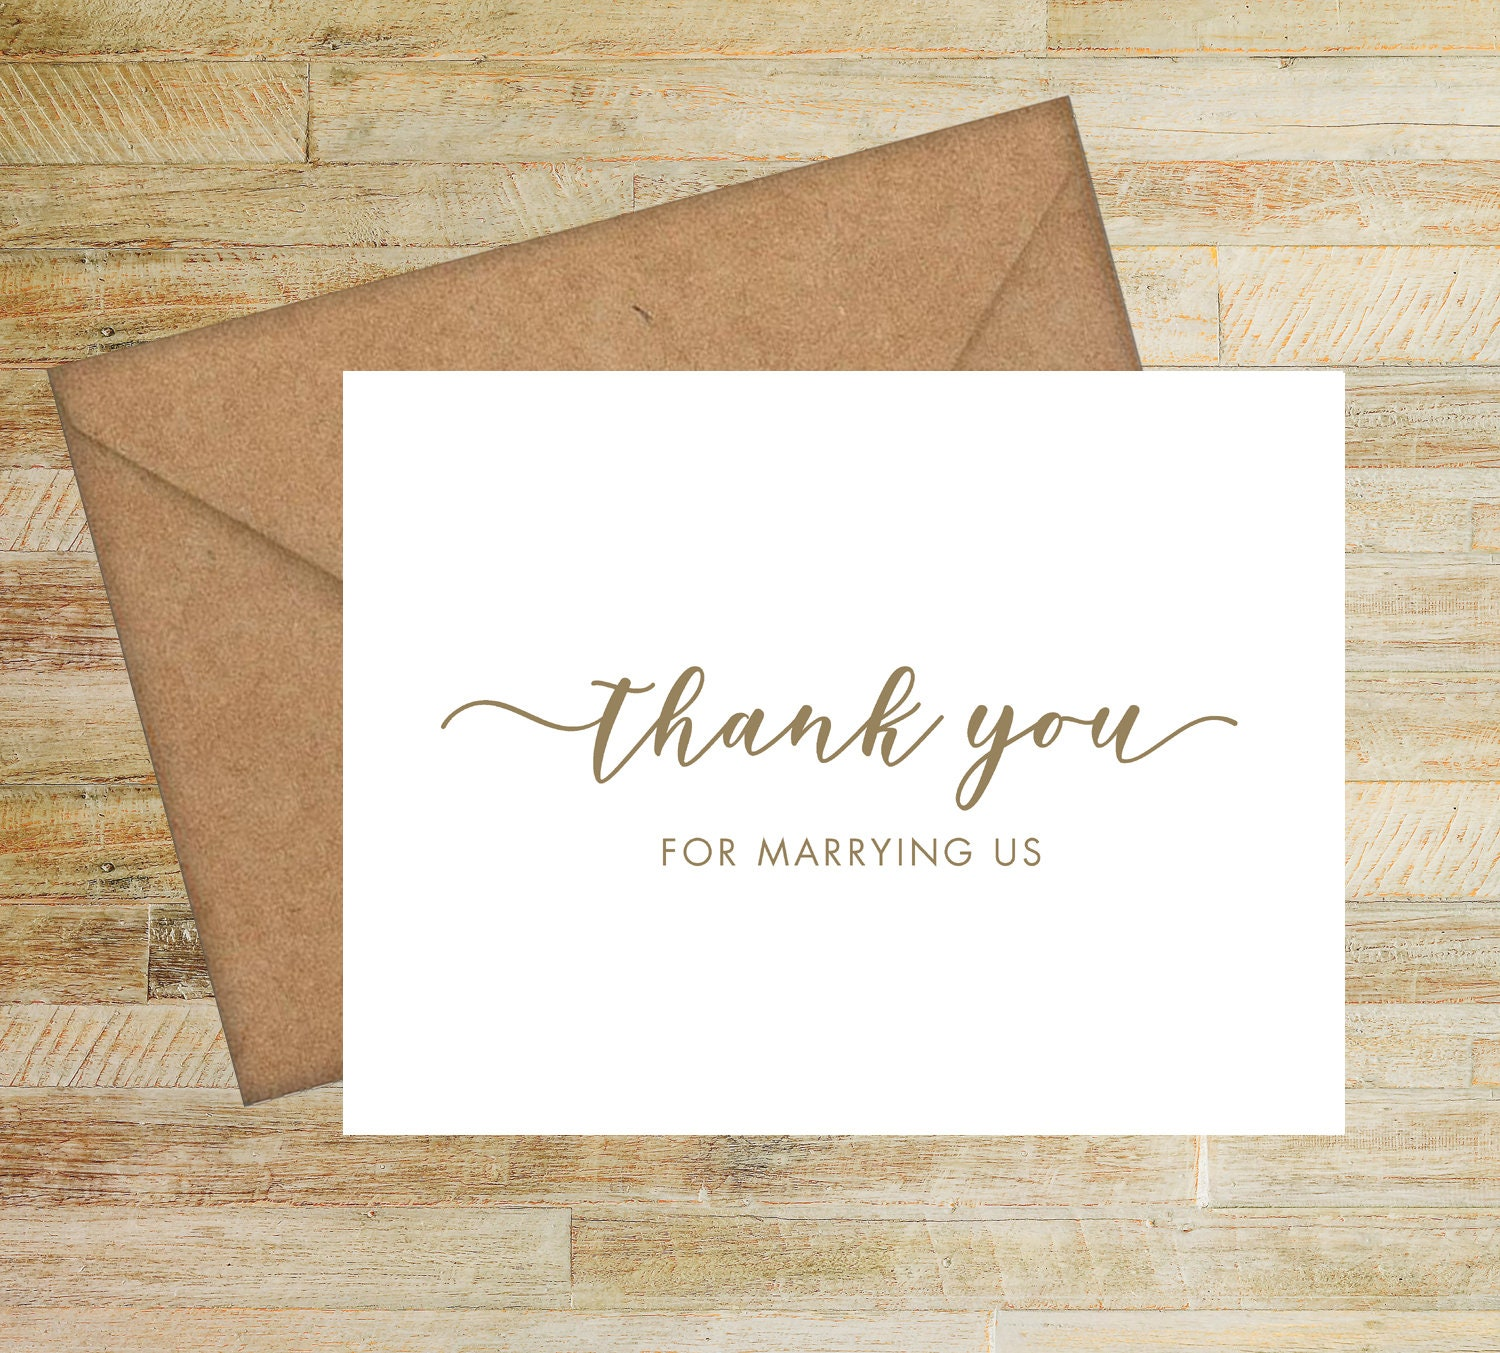 Heart Officiant Gift Black and White Wedding Adore Elegant Thank You For Marrying Us Wedding Day Card Officiant Card